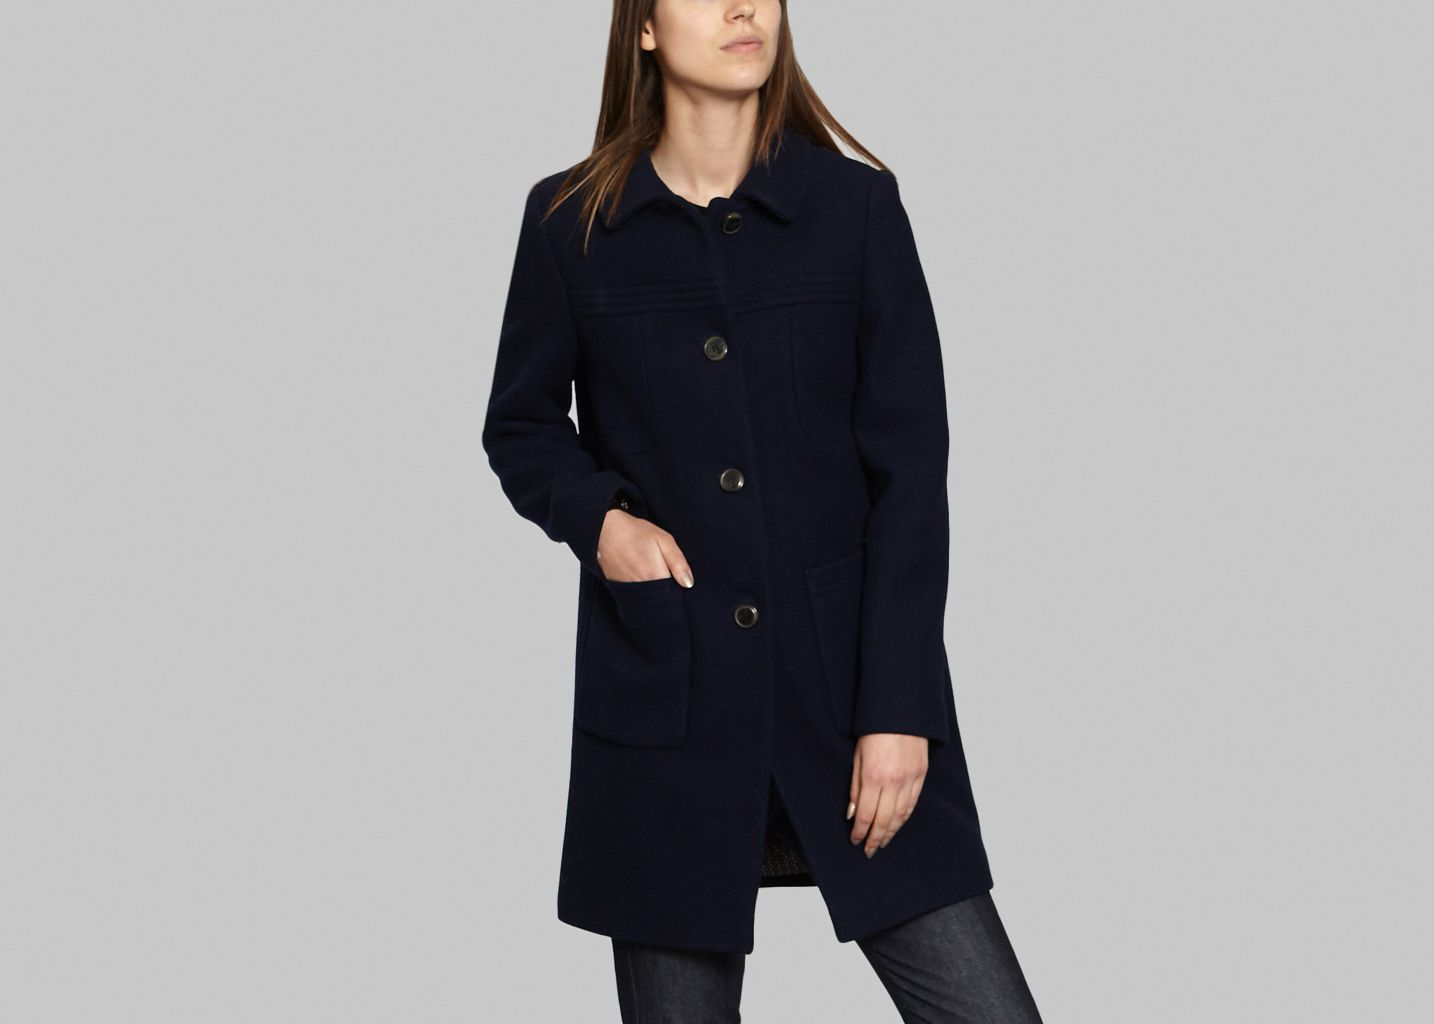 And Bleu Marine Manteau Bowo Coat L'exception Trench w45HEInAH